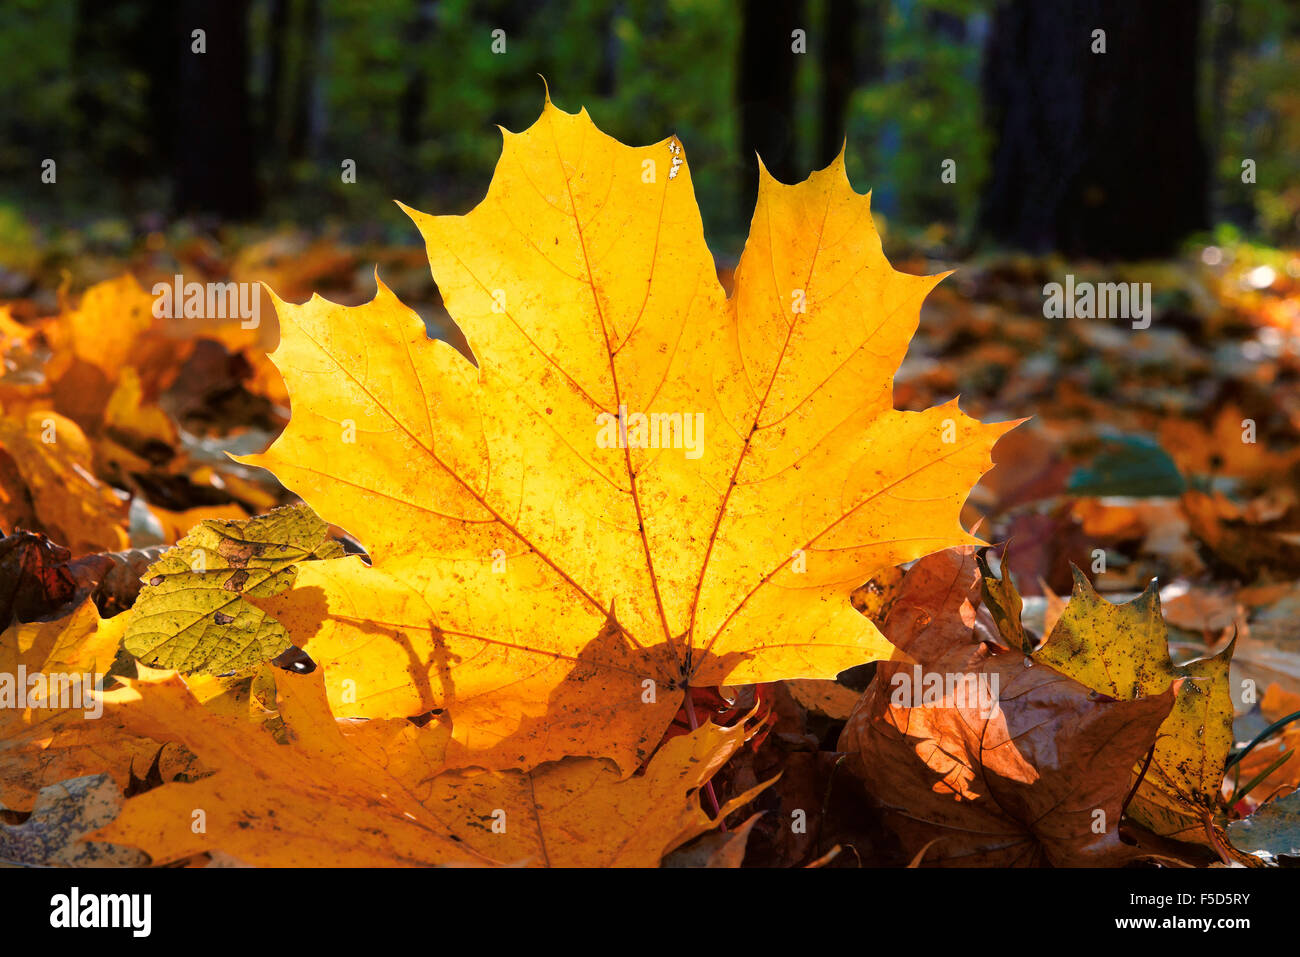 Colorful autumn maple leaves - Stock Image